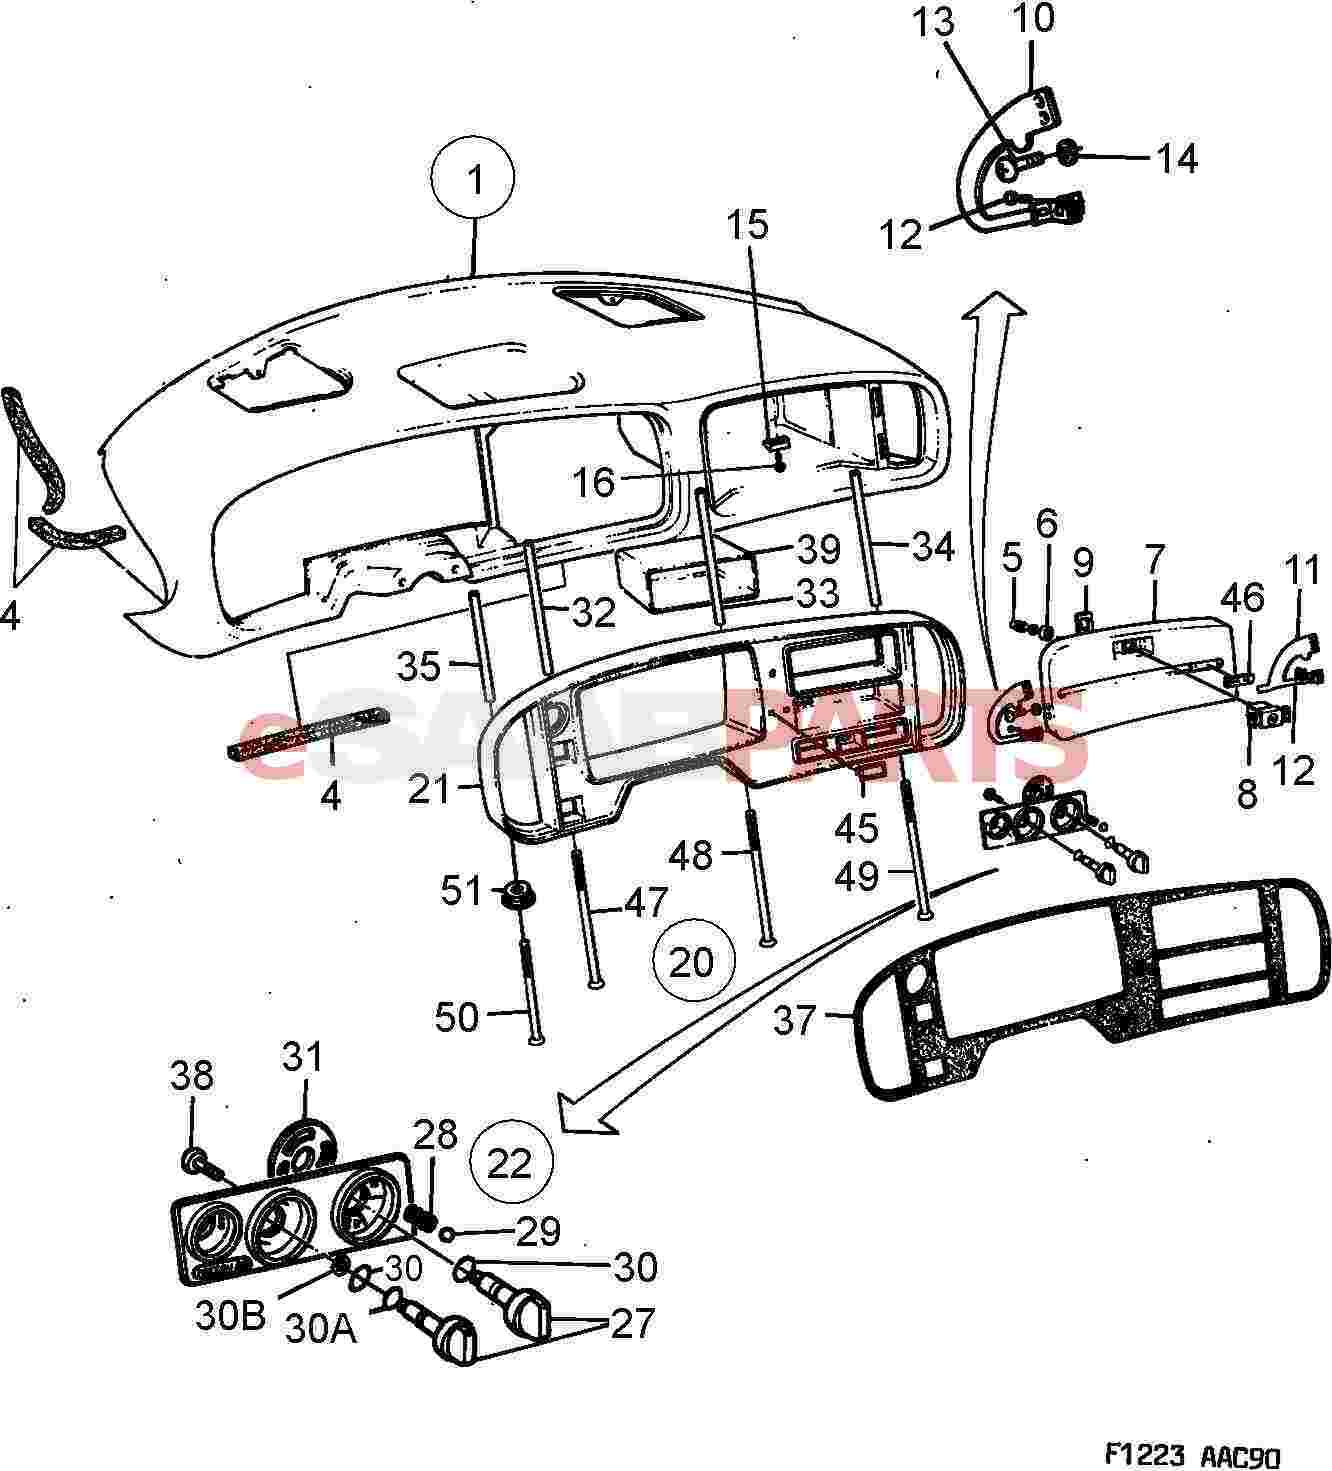 esaabparts com saab 900 \u003e car body internal parts \u003e dashhowdy! if you\u0027d like to be notified when 9425869 is available again, simply provide your email below thanks, the esaabparts com team part number